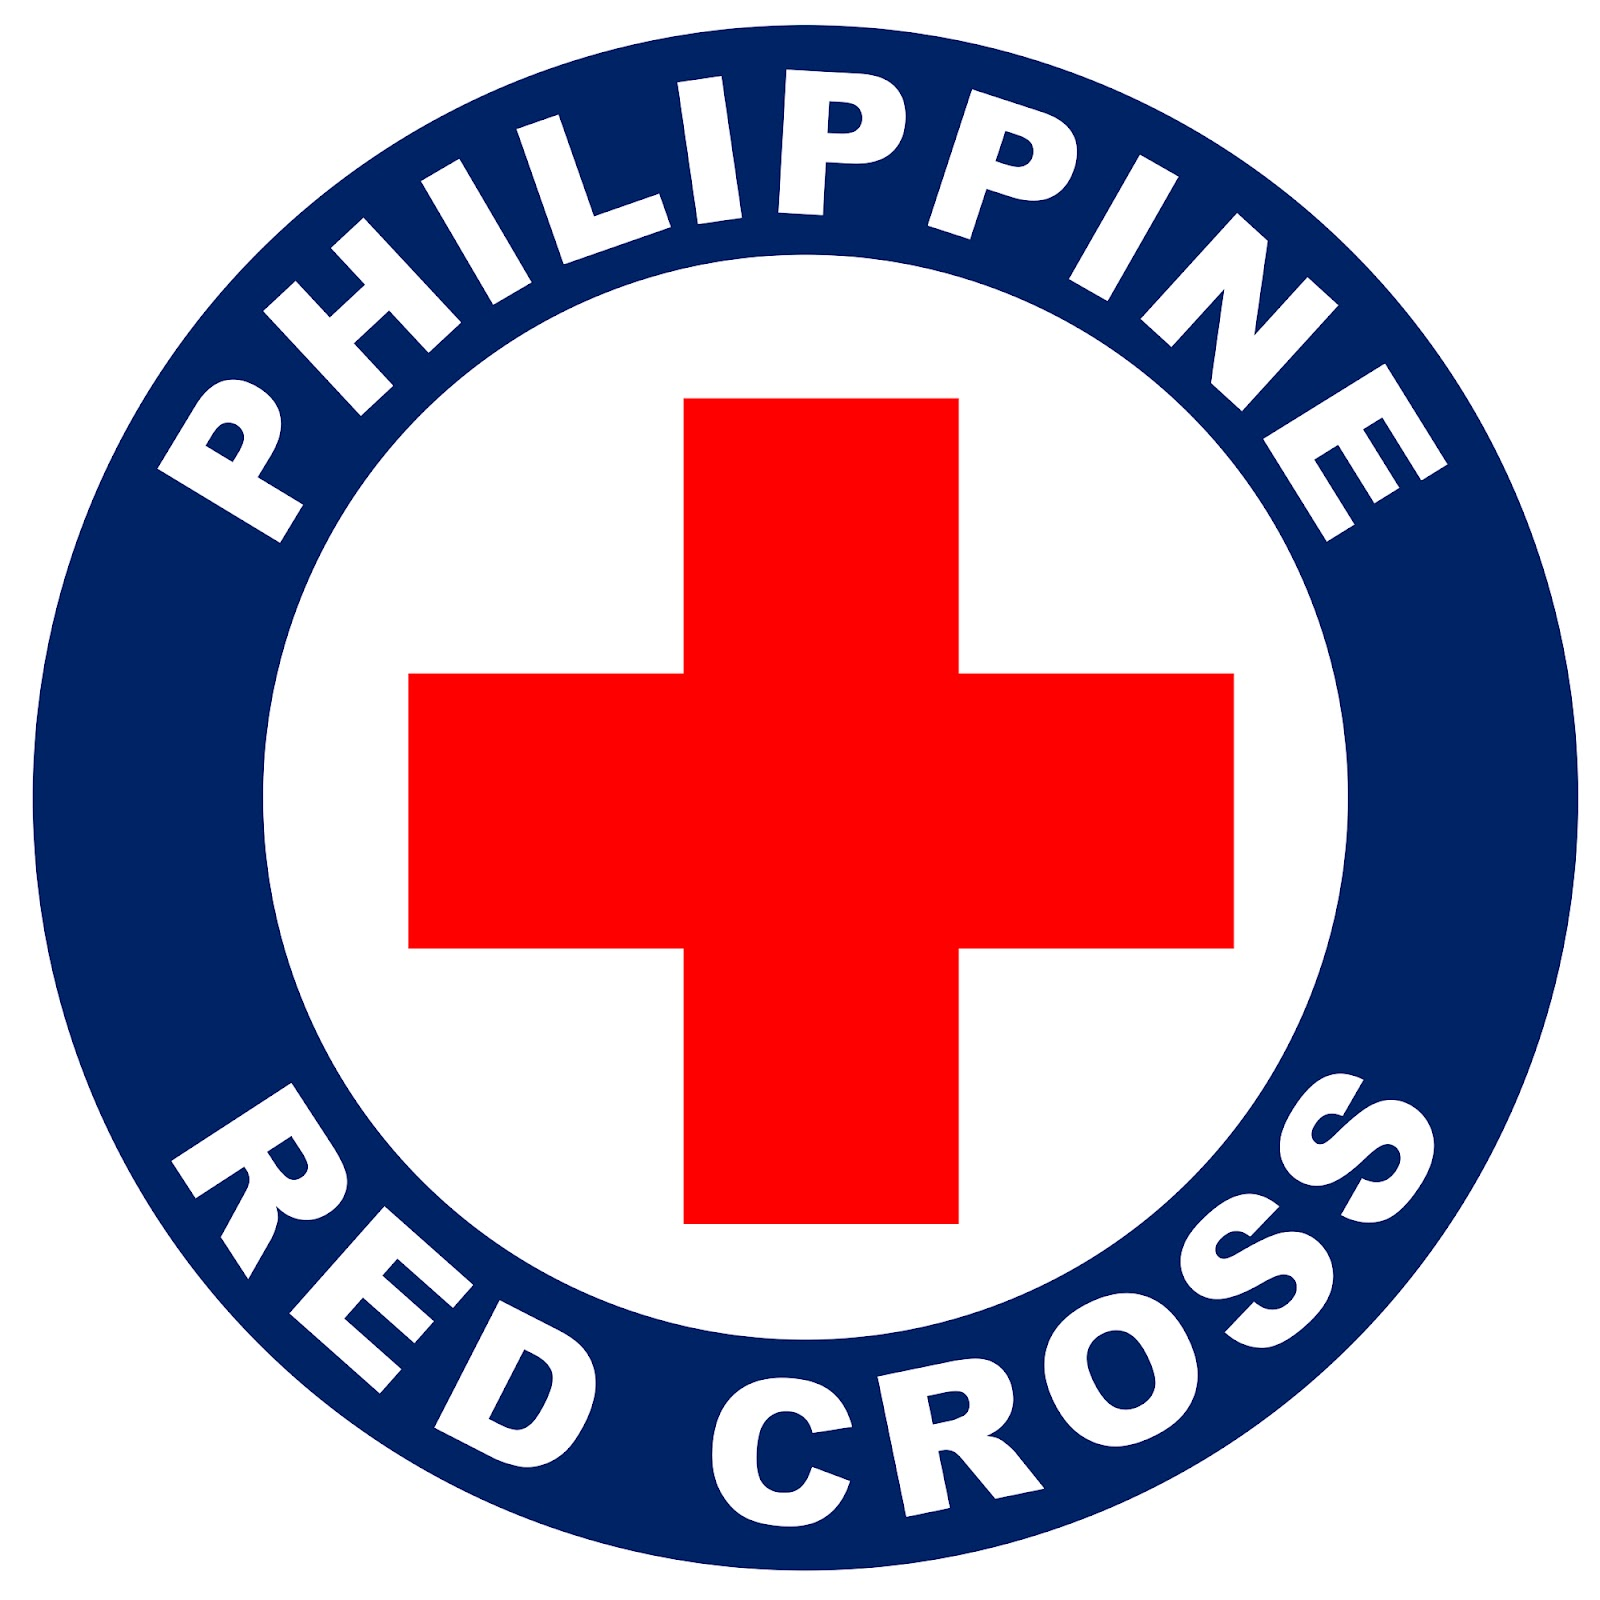 Filephilippine Red Cross Logog Wikimedia Commons